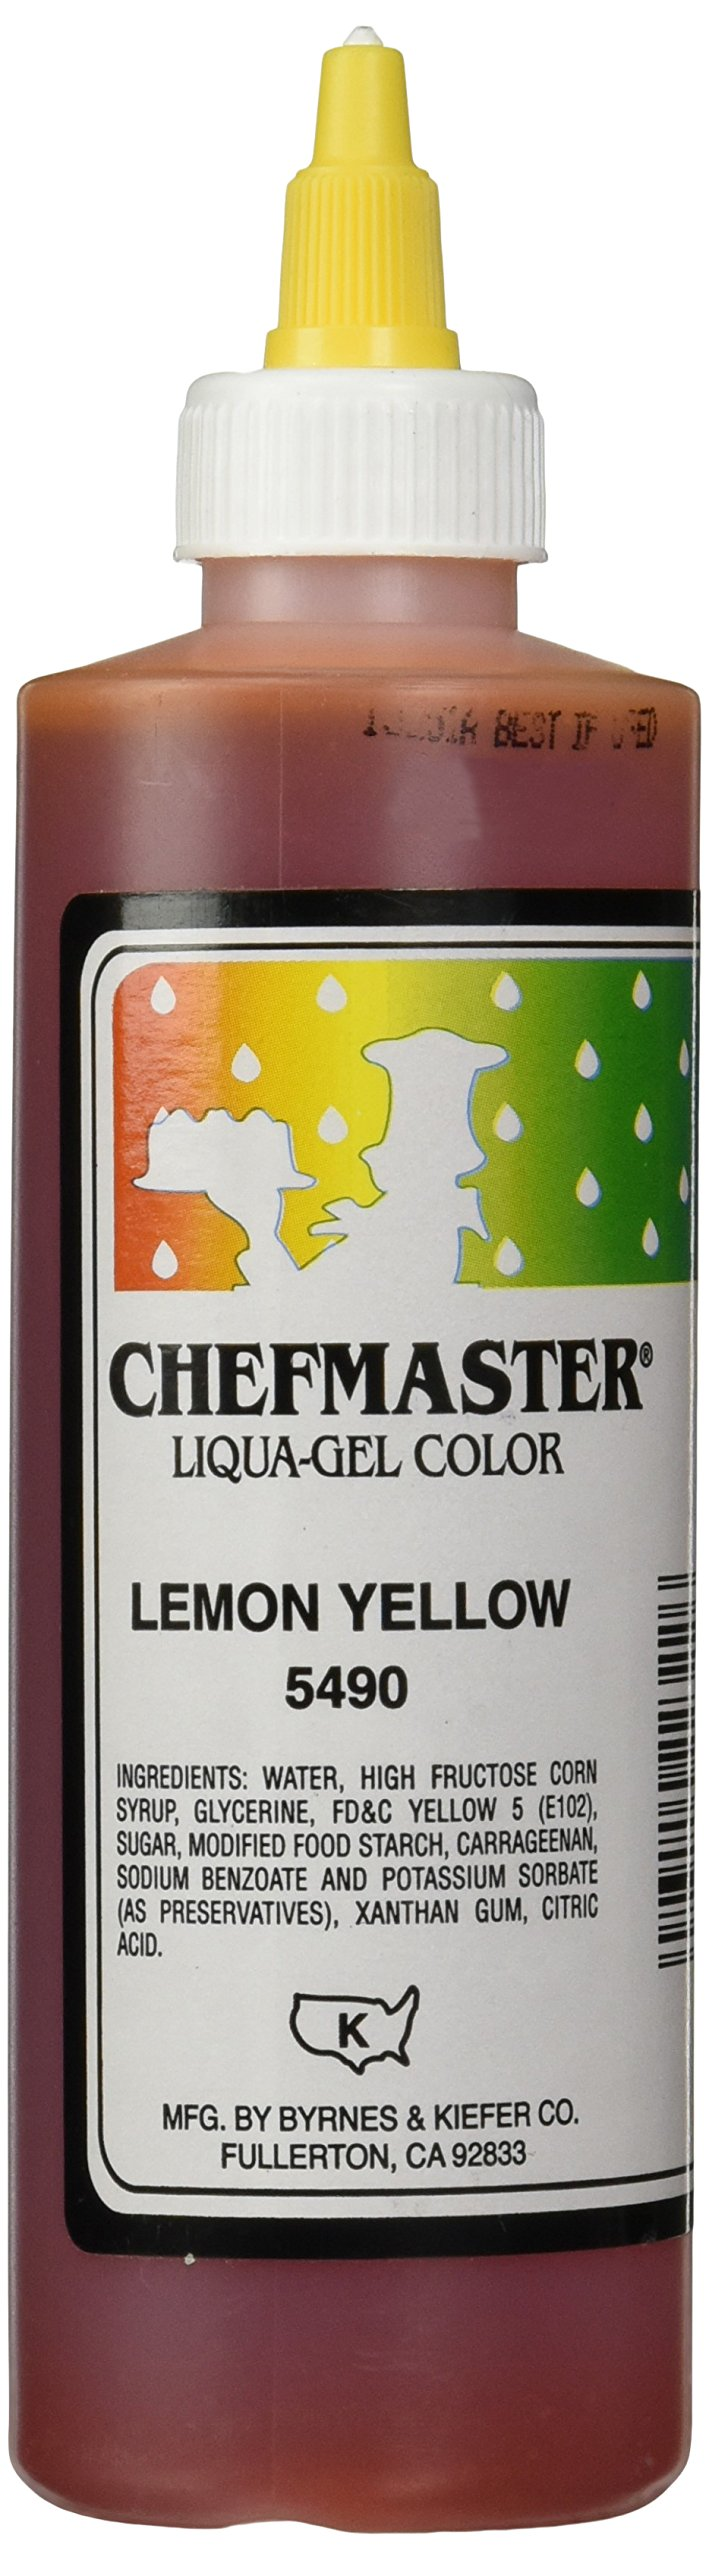 Chefmaster Liqua-Gel Food Color, 10.5-Ounce, Lemon Yellow [labeling may vary] by Chefmaster